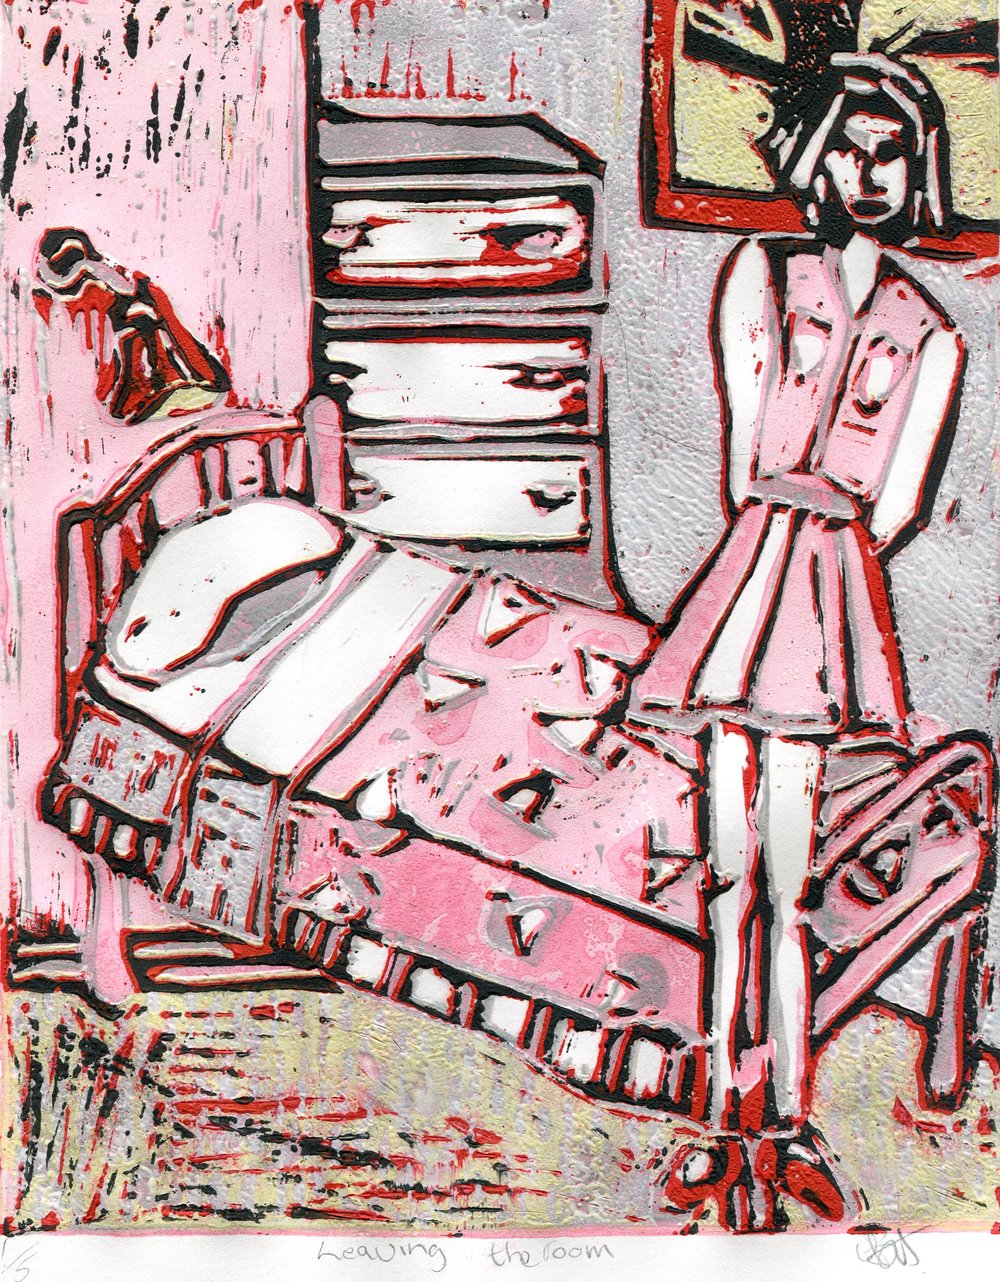 39a  Elize Buchler  Leaving the room  linocut print on paper